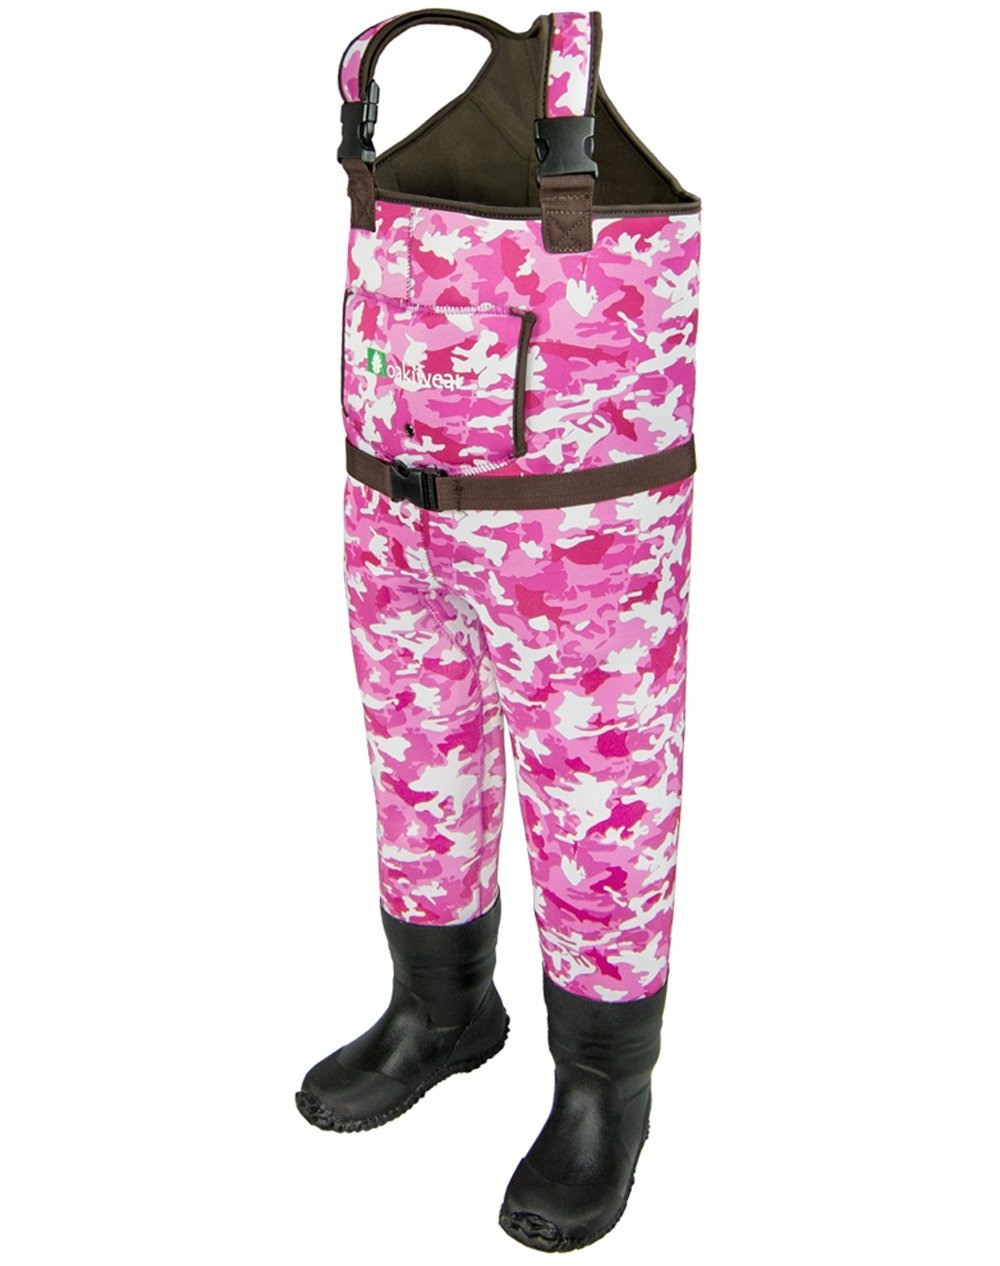 今季ブランド (6 Children's/7, Pink Camo) for - OAKI Toddler OAKI & Children's Neoprene Waterproof Fishing Waders for Kids B0108U6AS2, キホウチョウ:674fc588 --- a0267596.xsph.ru